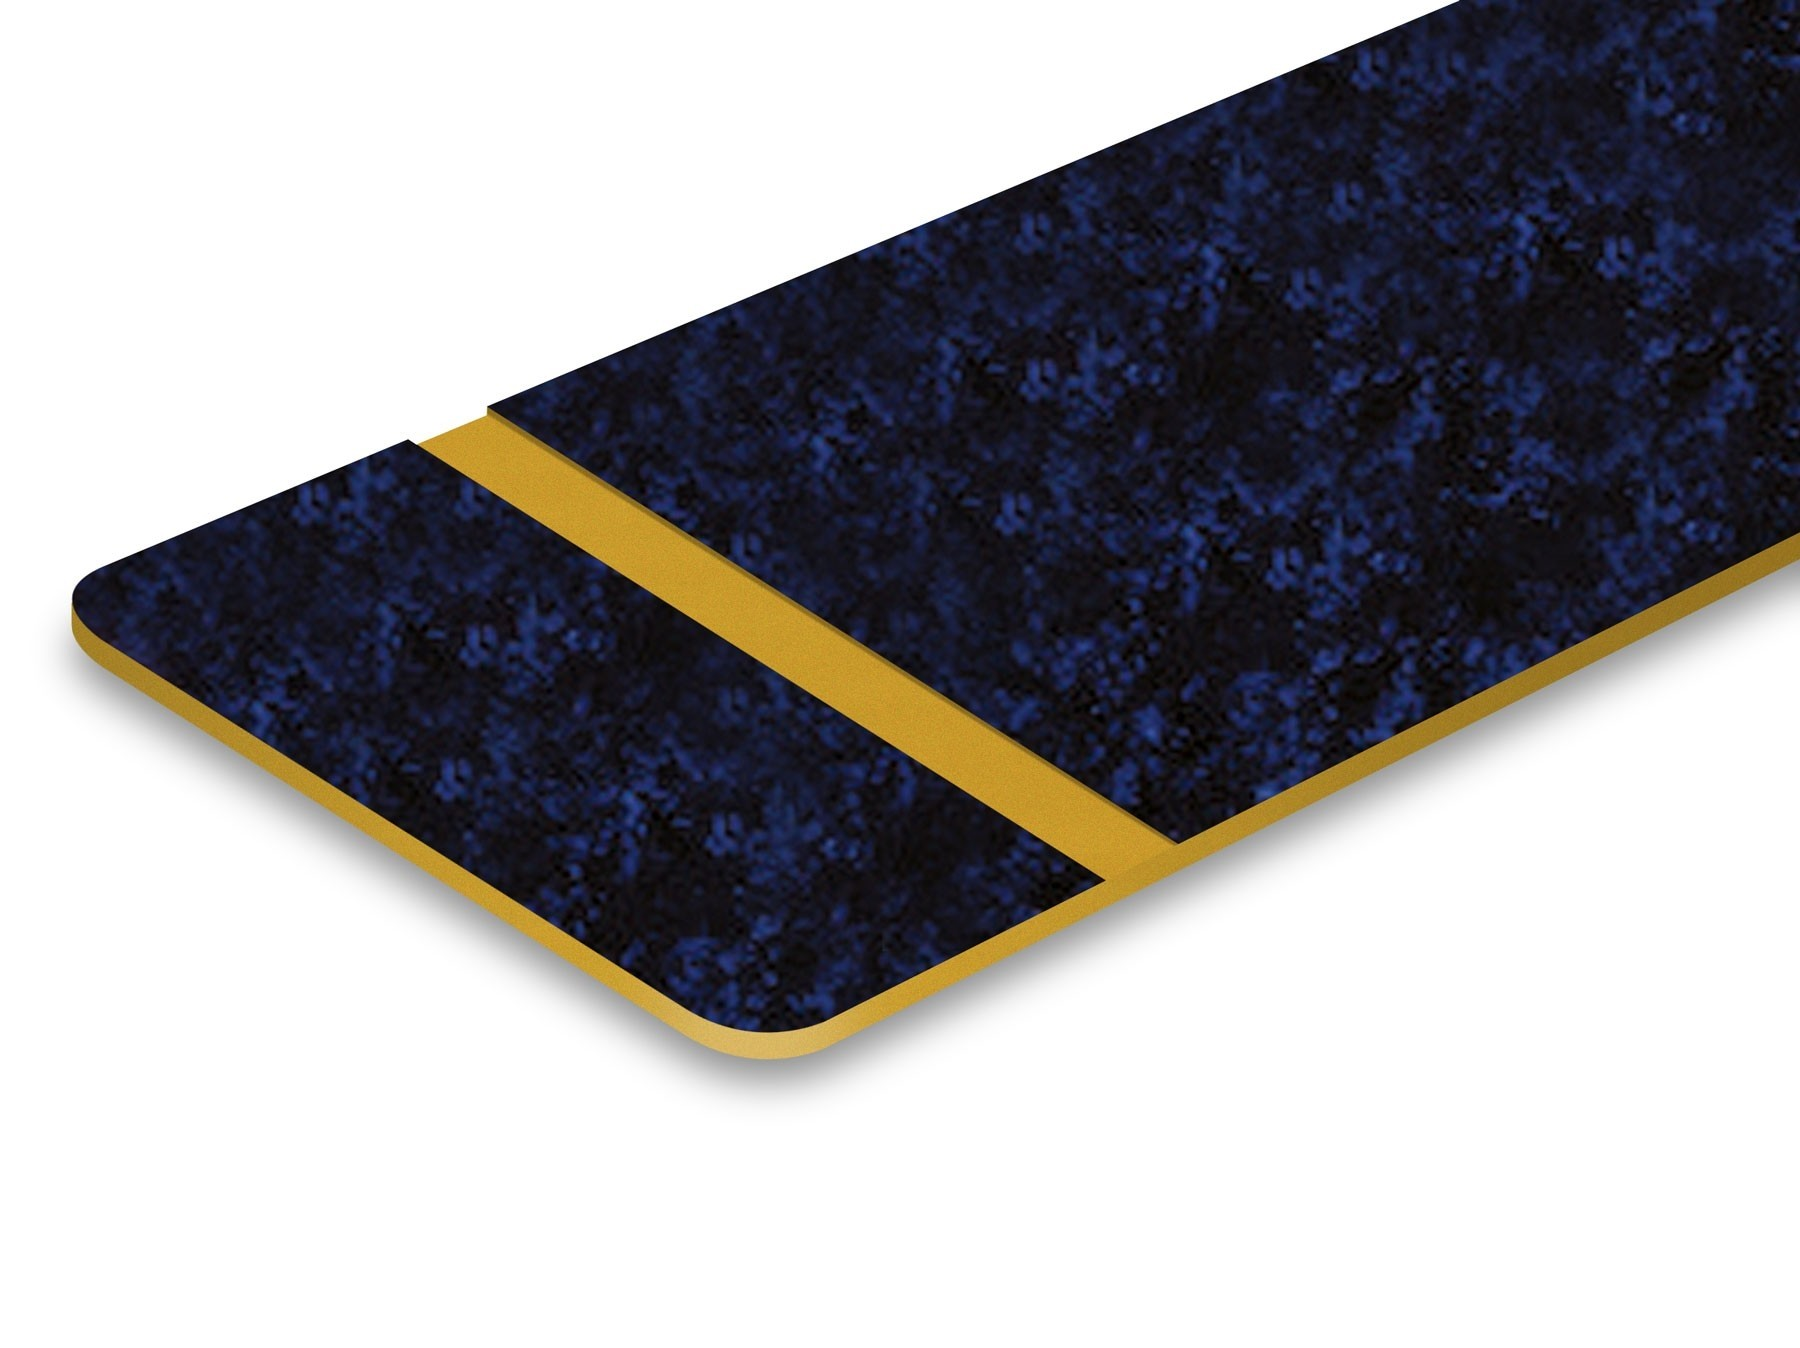 TroLase Thins, Celestial Blue/Gold, 2ply, 0.5 mm